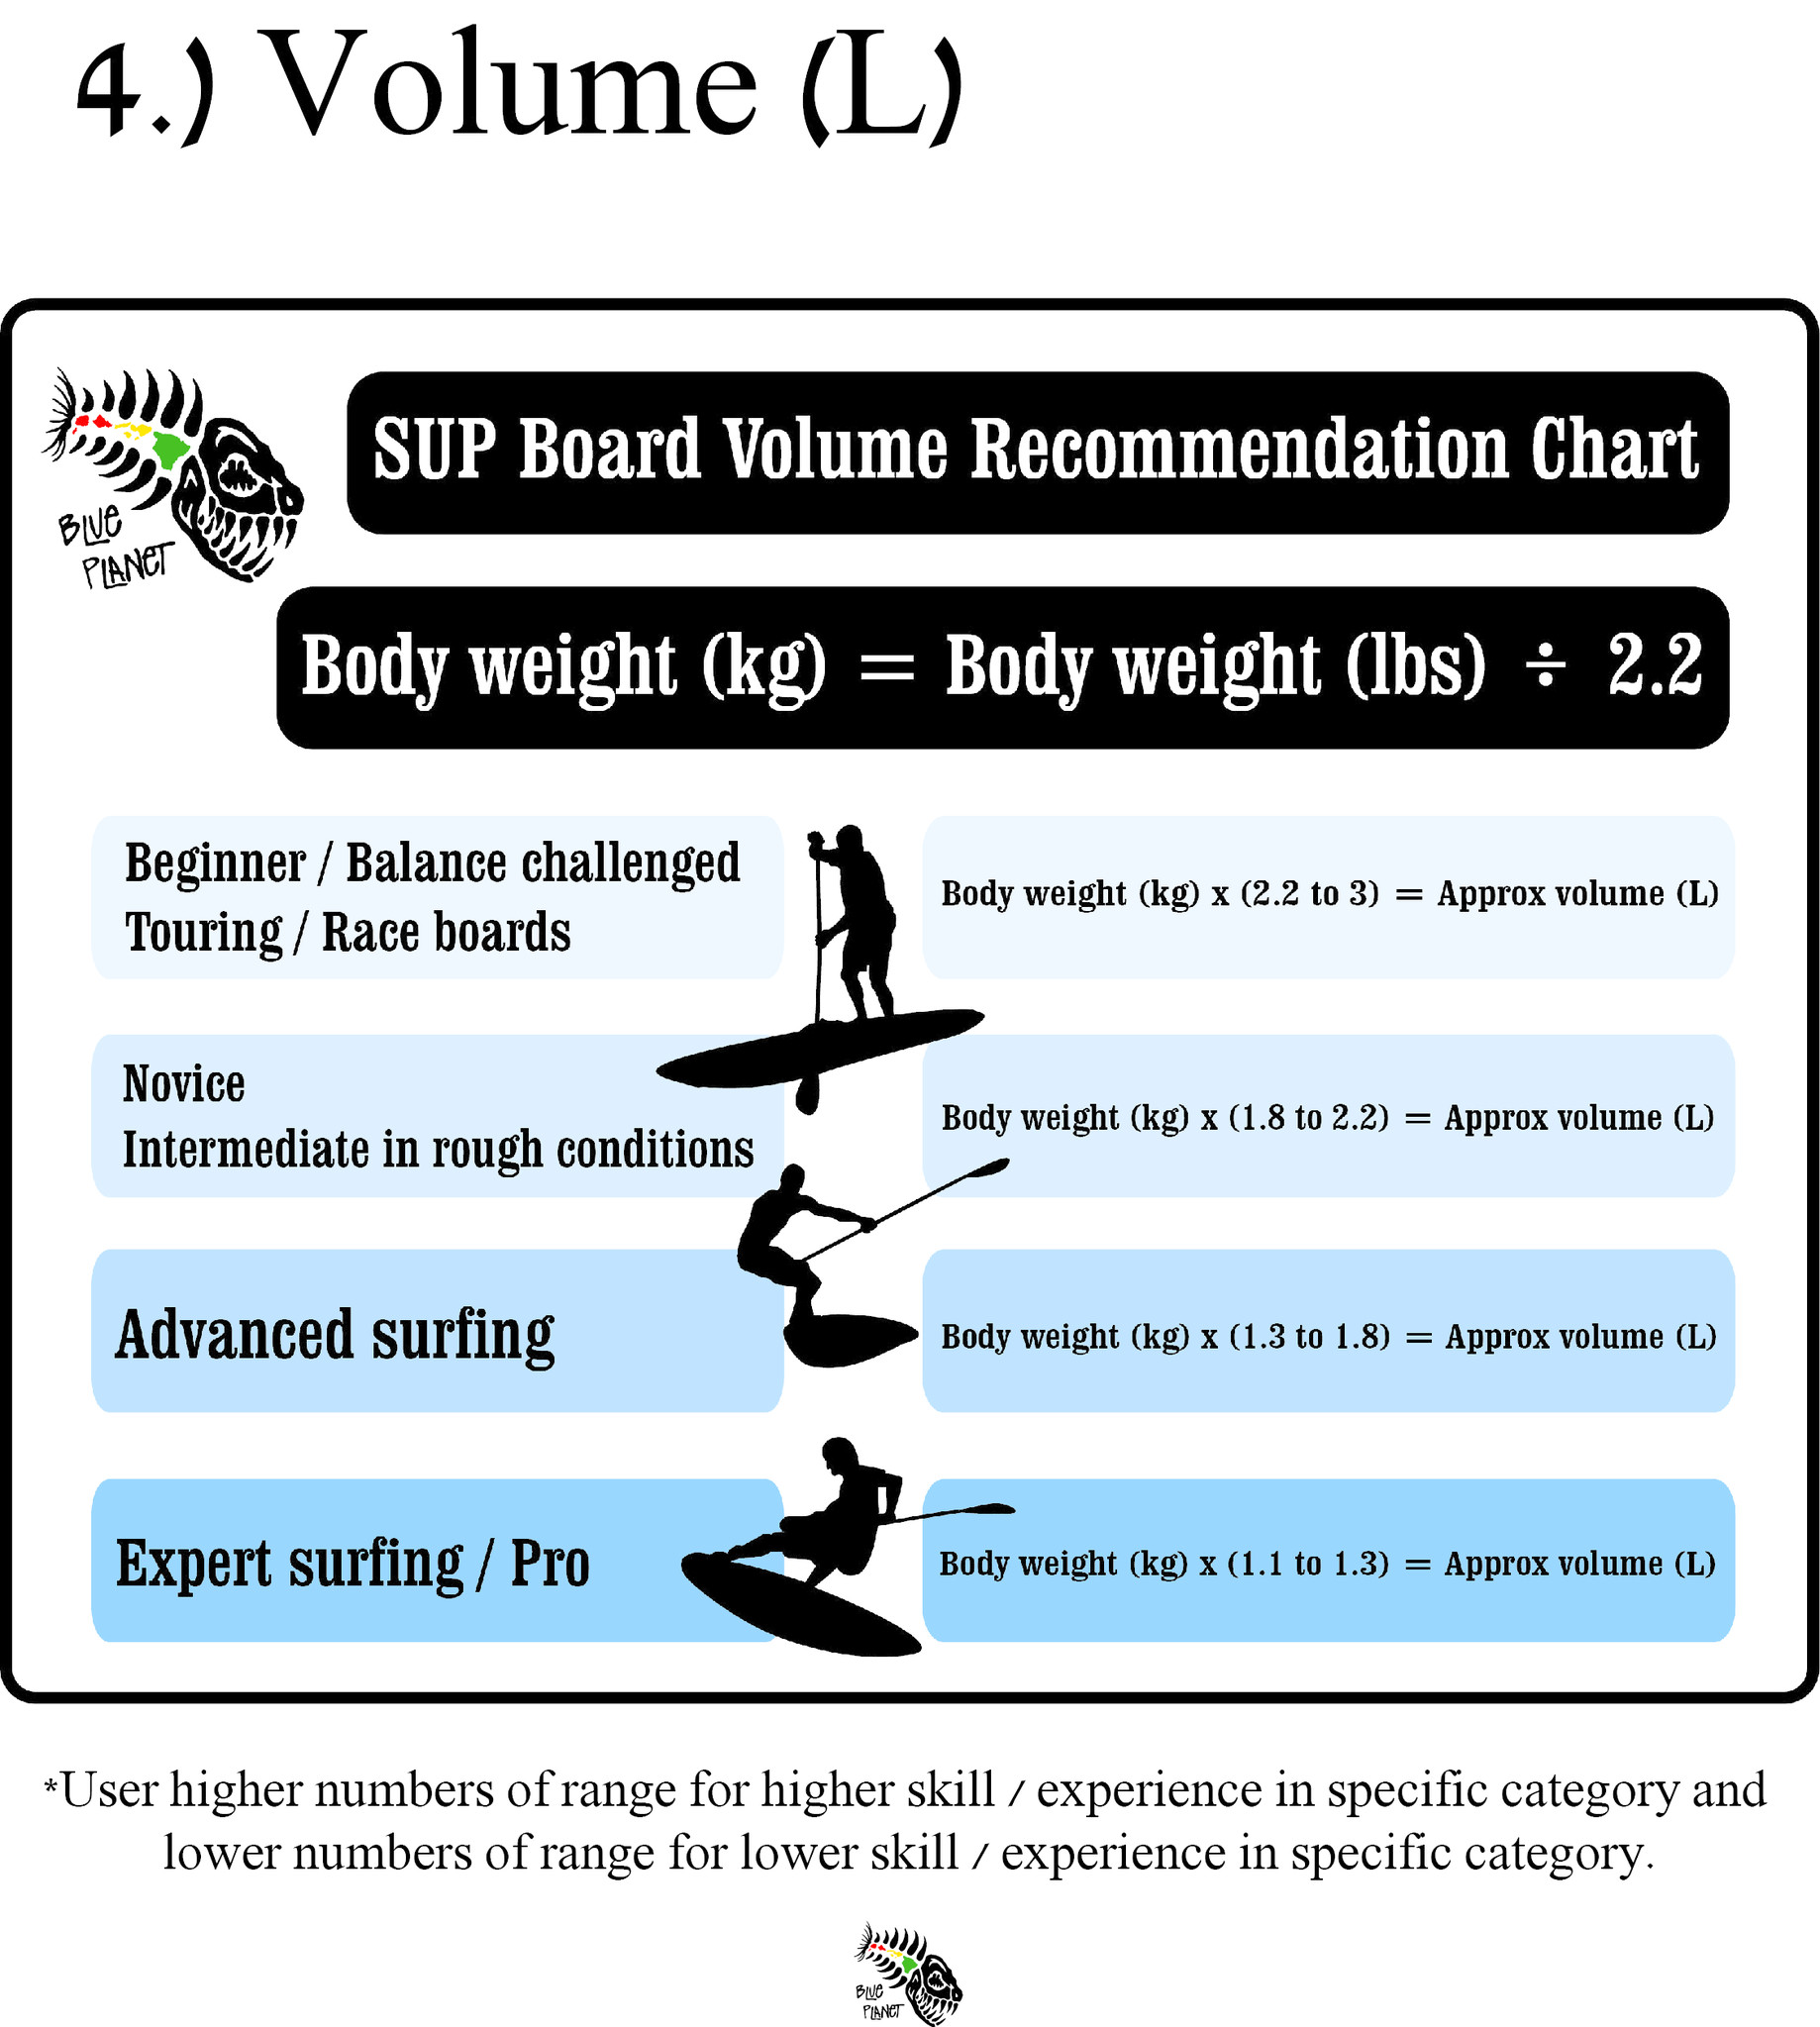 SUP Board Volume